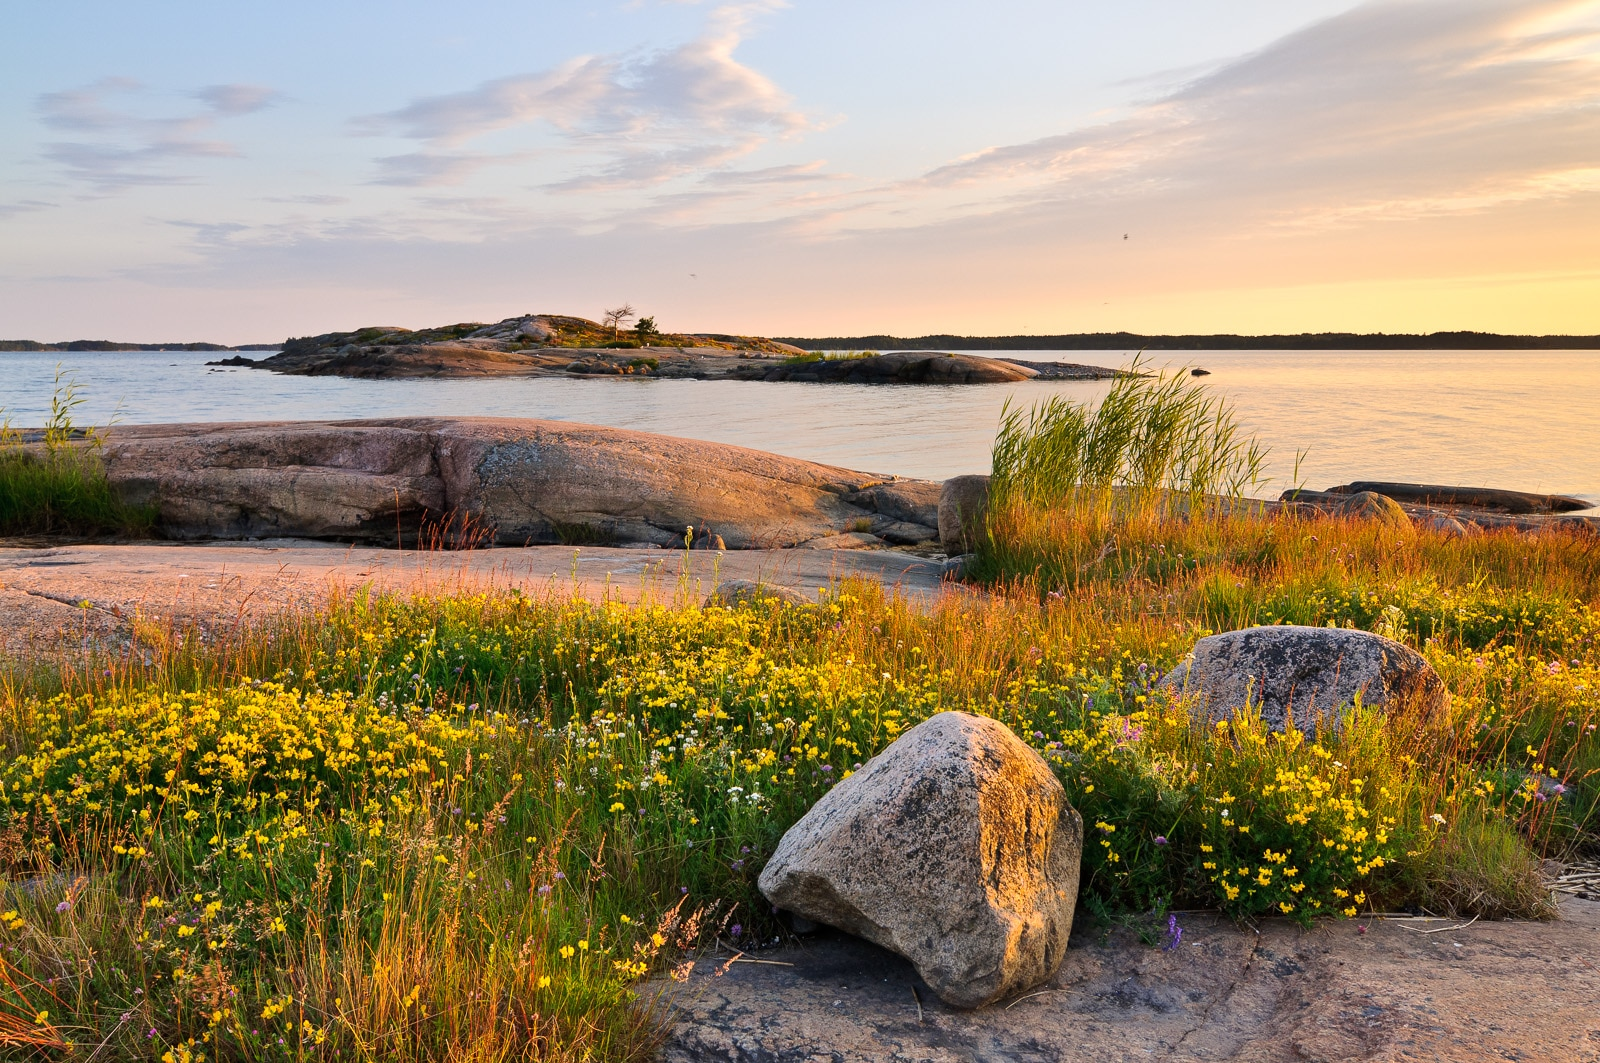 Secret location to the Gulf of Finland and the Baltic Sea in summer. Smooth and warm rock beach with wild flowers blooming. Nature near Helsinki, Finland.